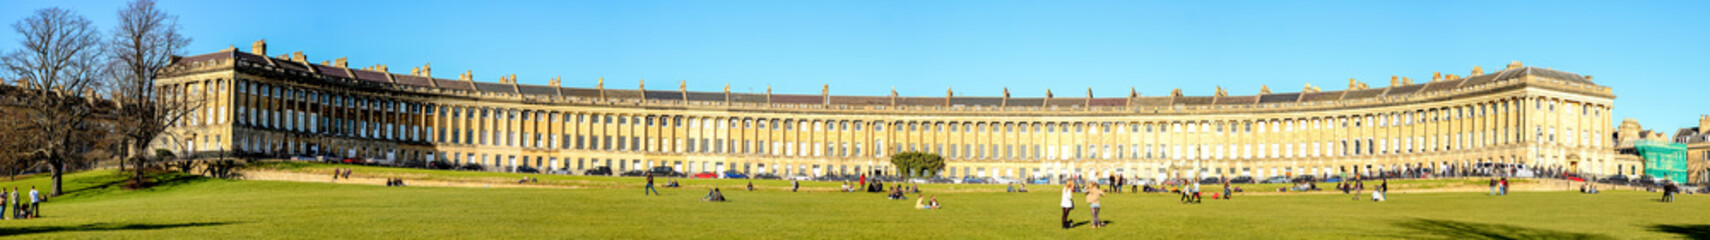 Full panoramic view of The Royal Crescent in Bath city, UK